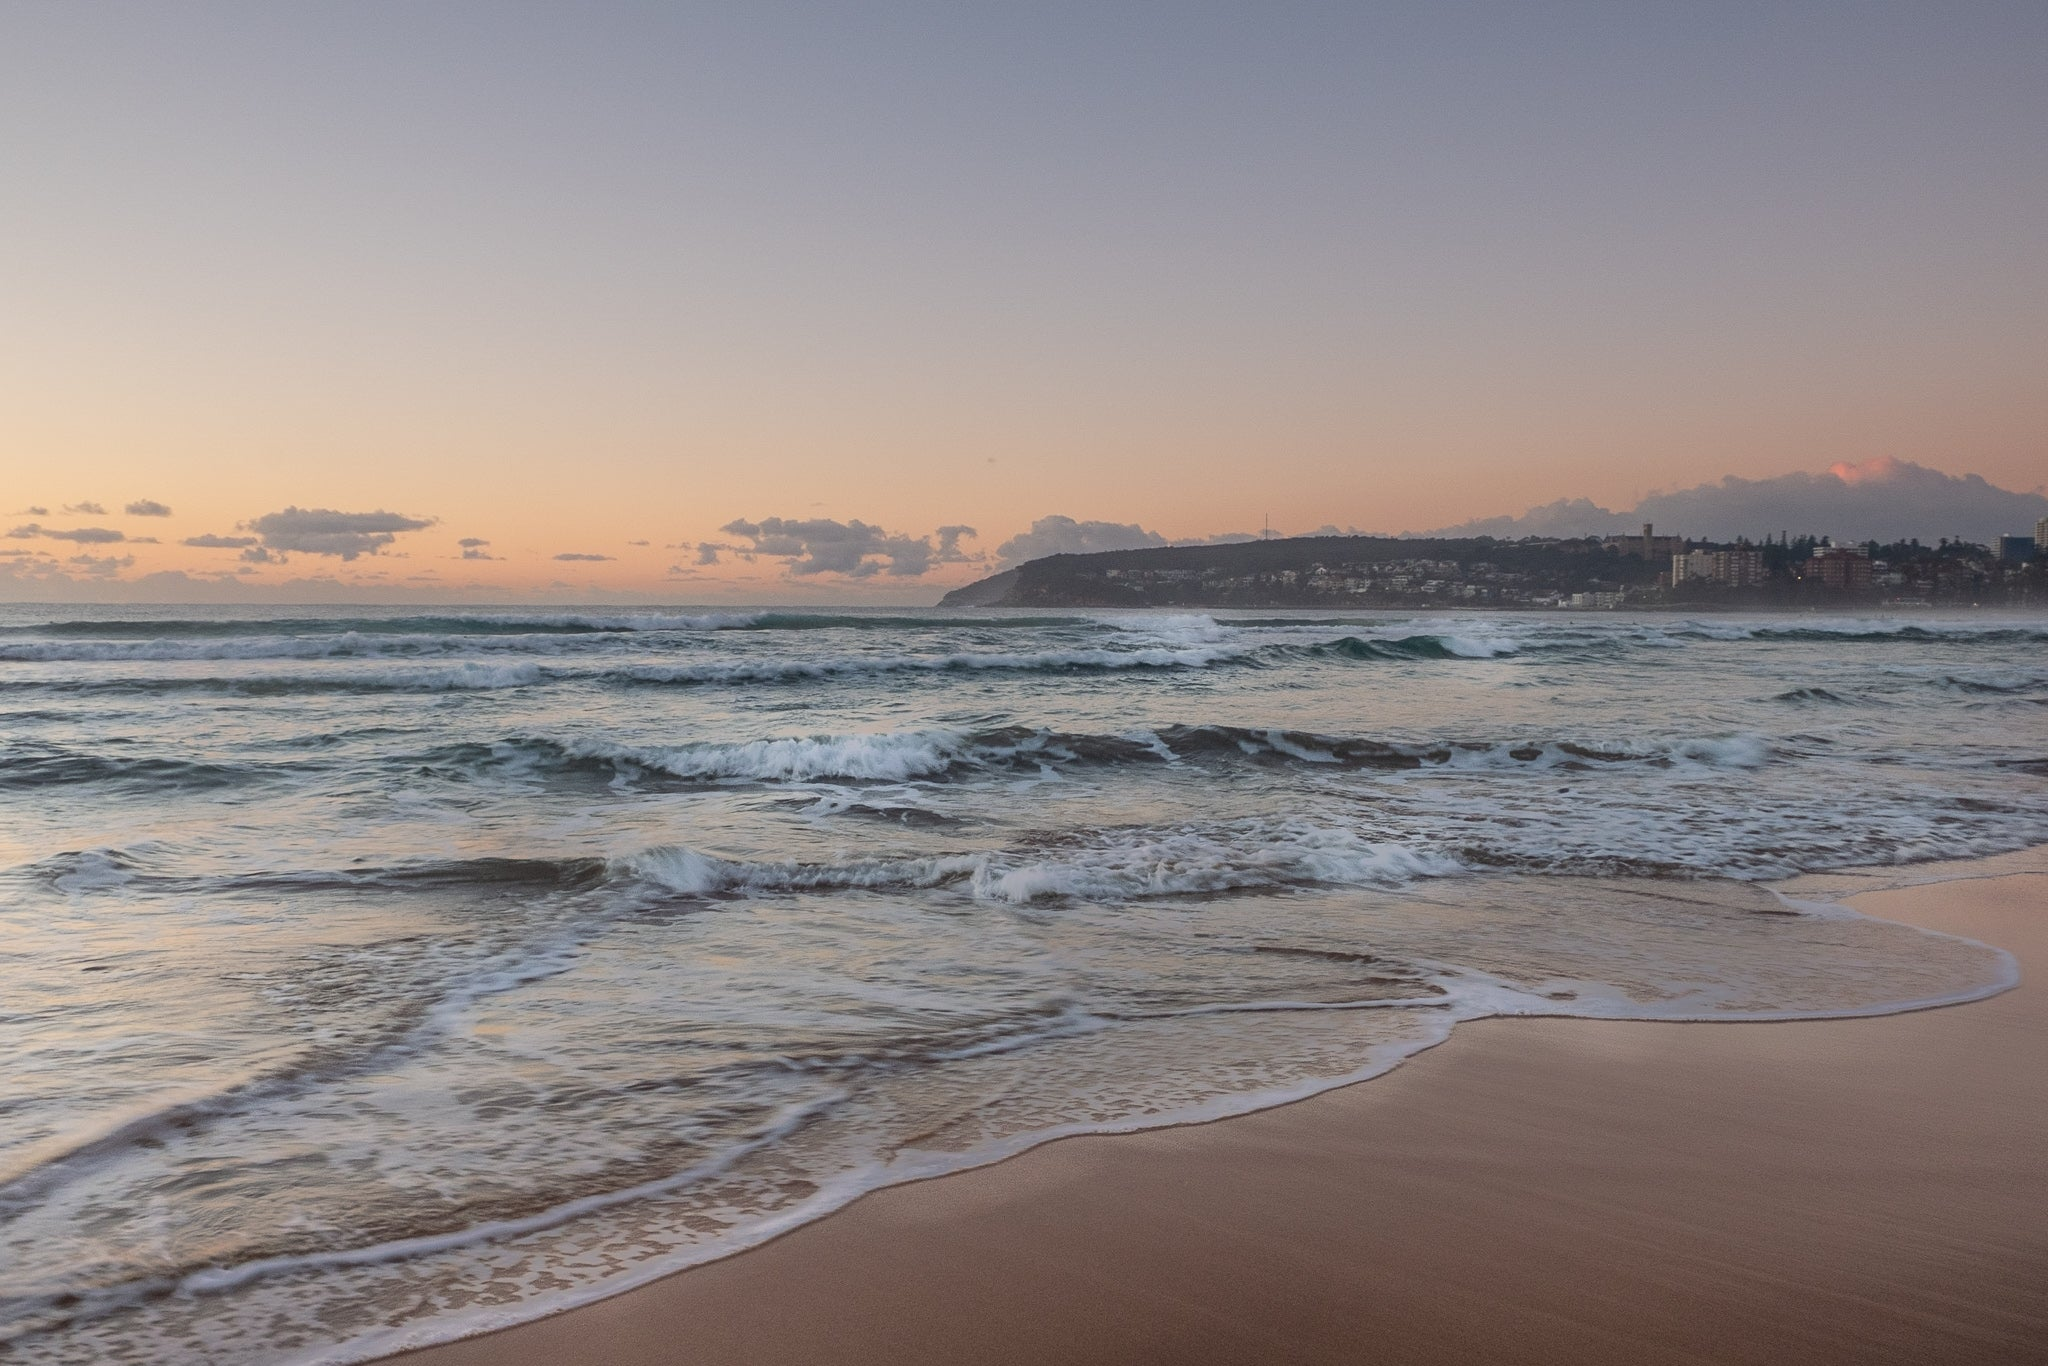 Sunrise photo from the 27th June 2019 at Queenscliff beach in Sydney